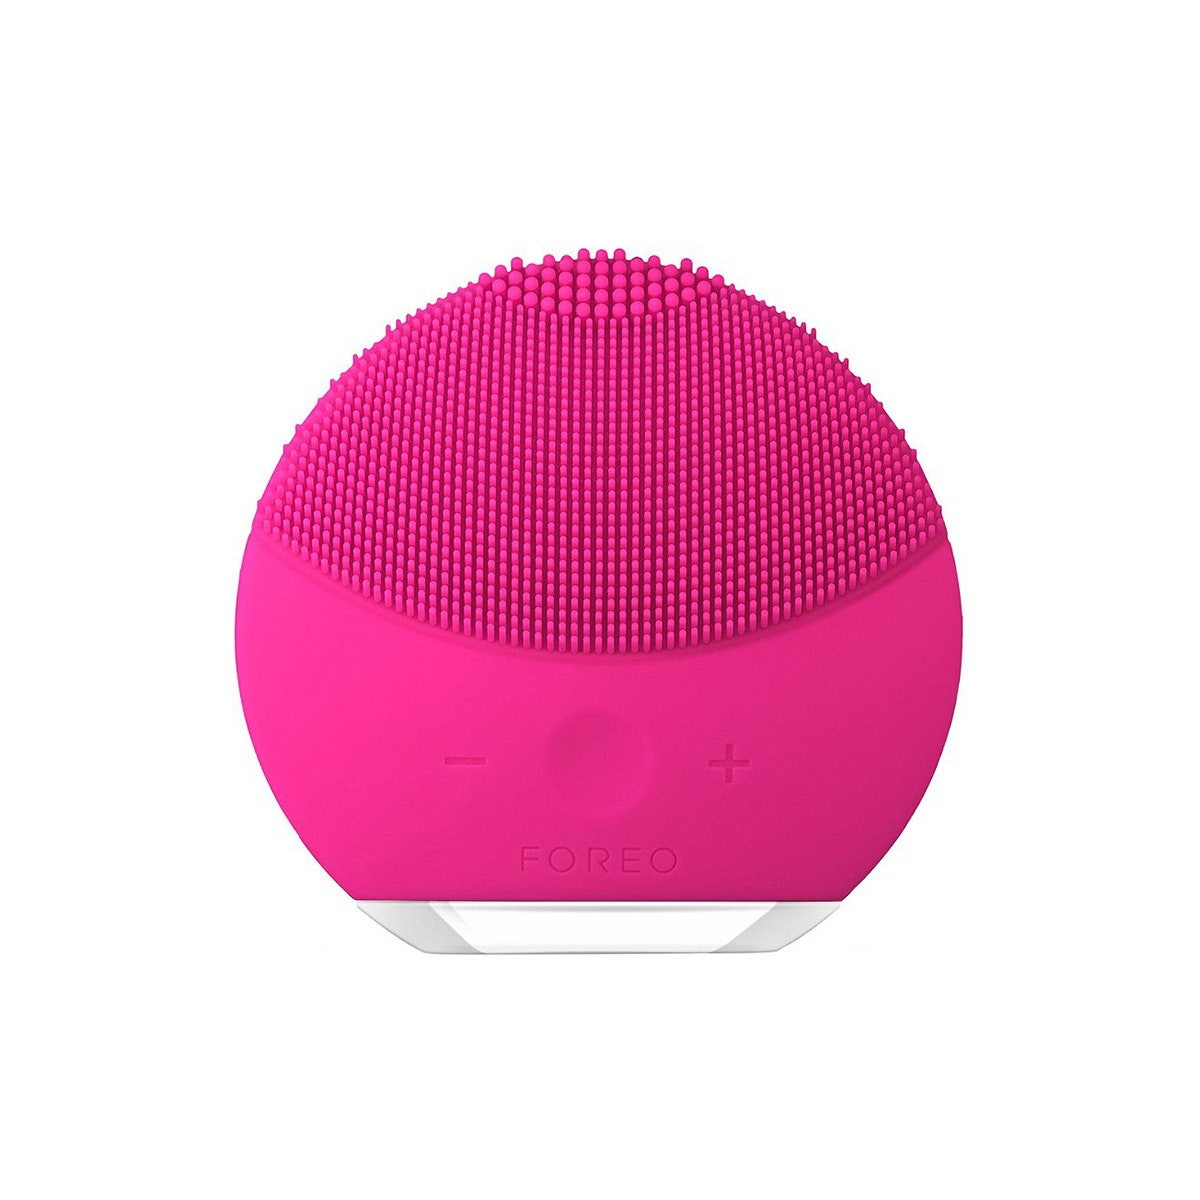 foreo luna mini 2 hot pink facial cleanser tool